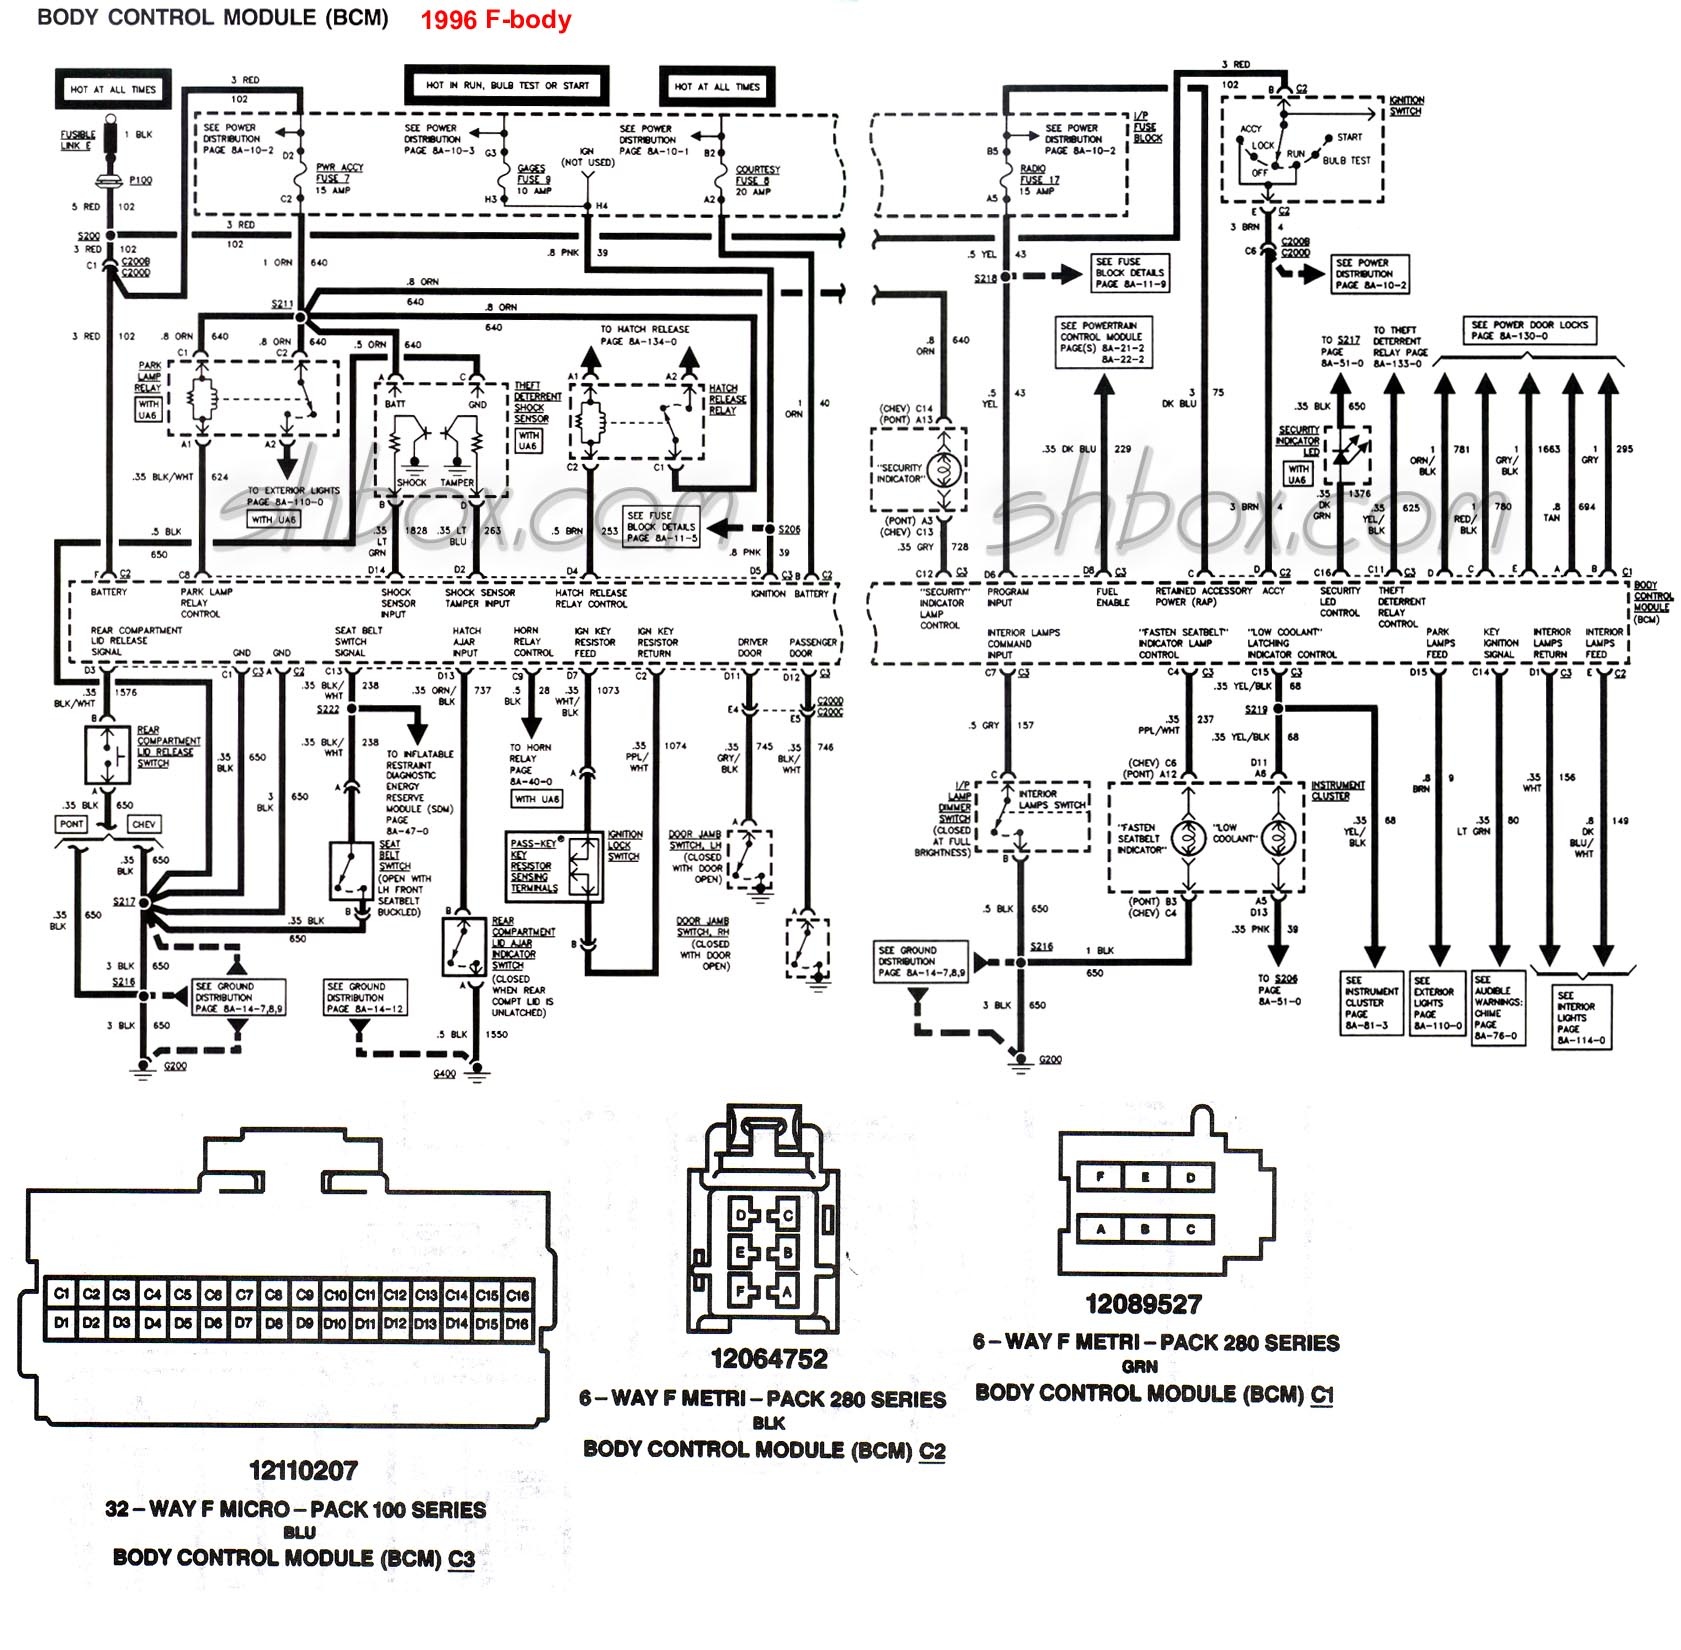 hight resolution of impala bcm wiring diagram wiring diagram centre 2010 chevrolet impala bcm wiring